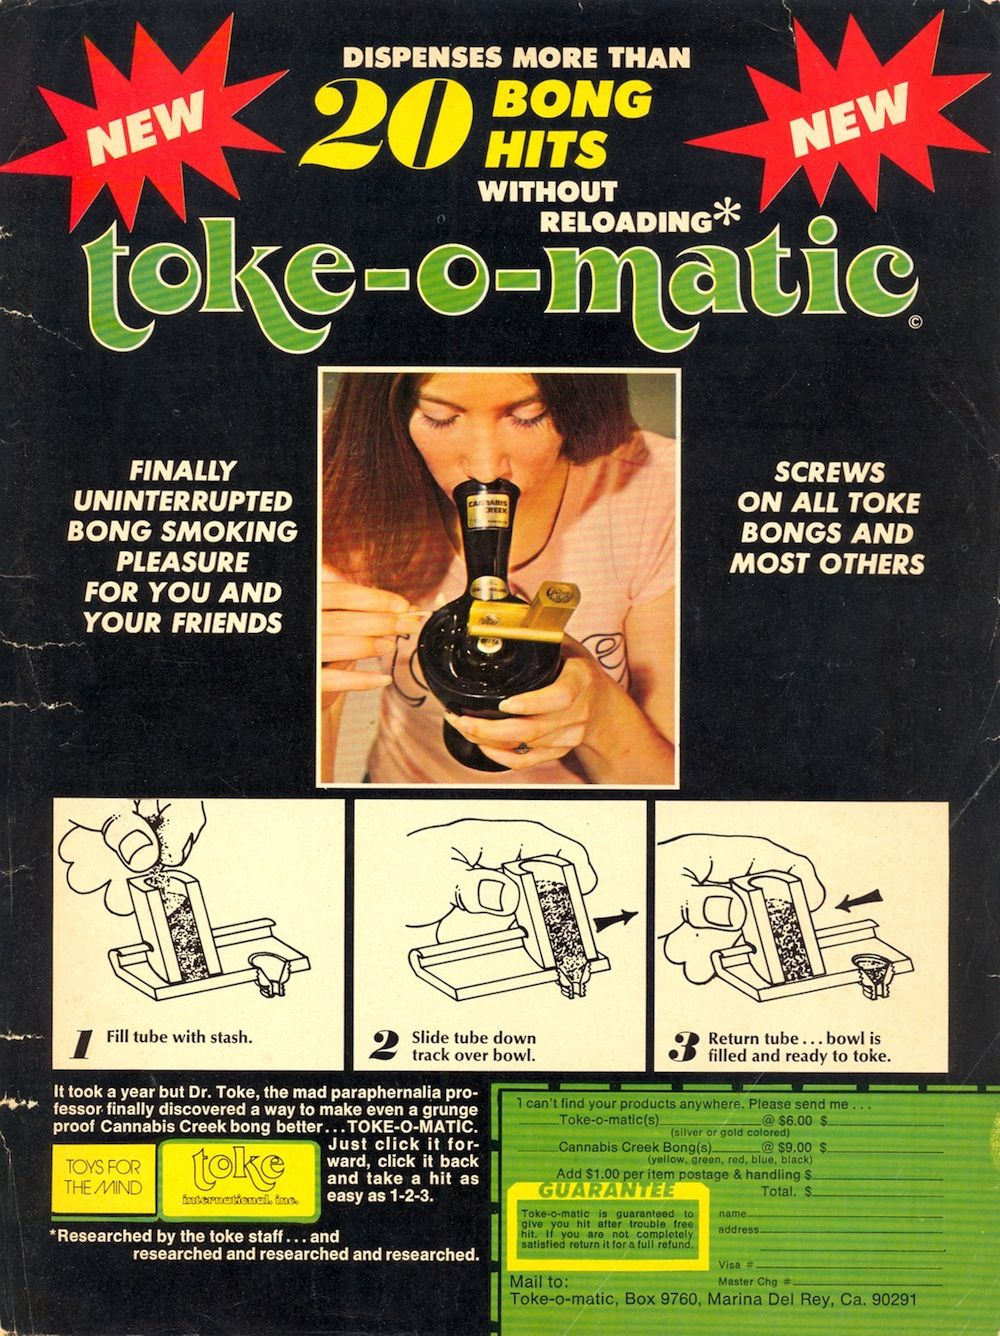 toke o matic funny old weed magazine advertisement